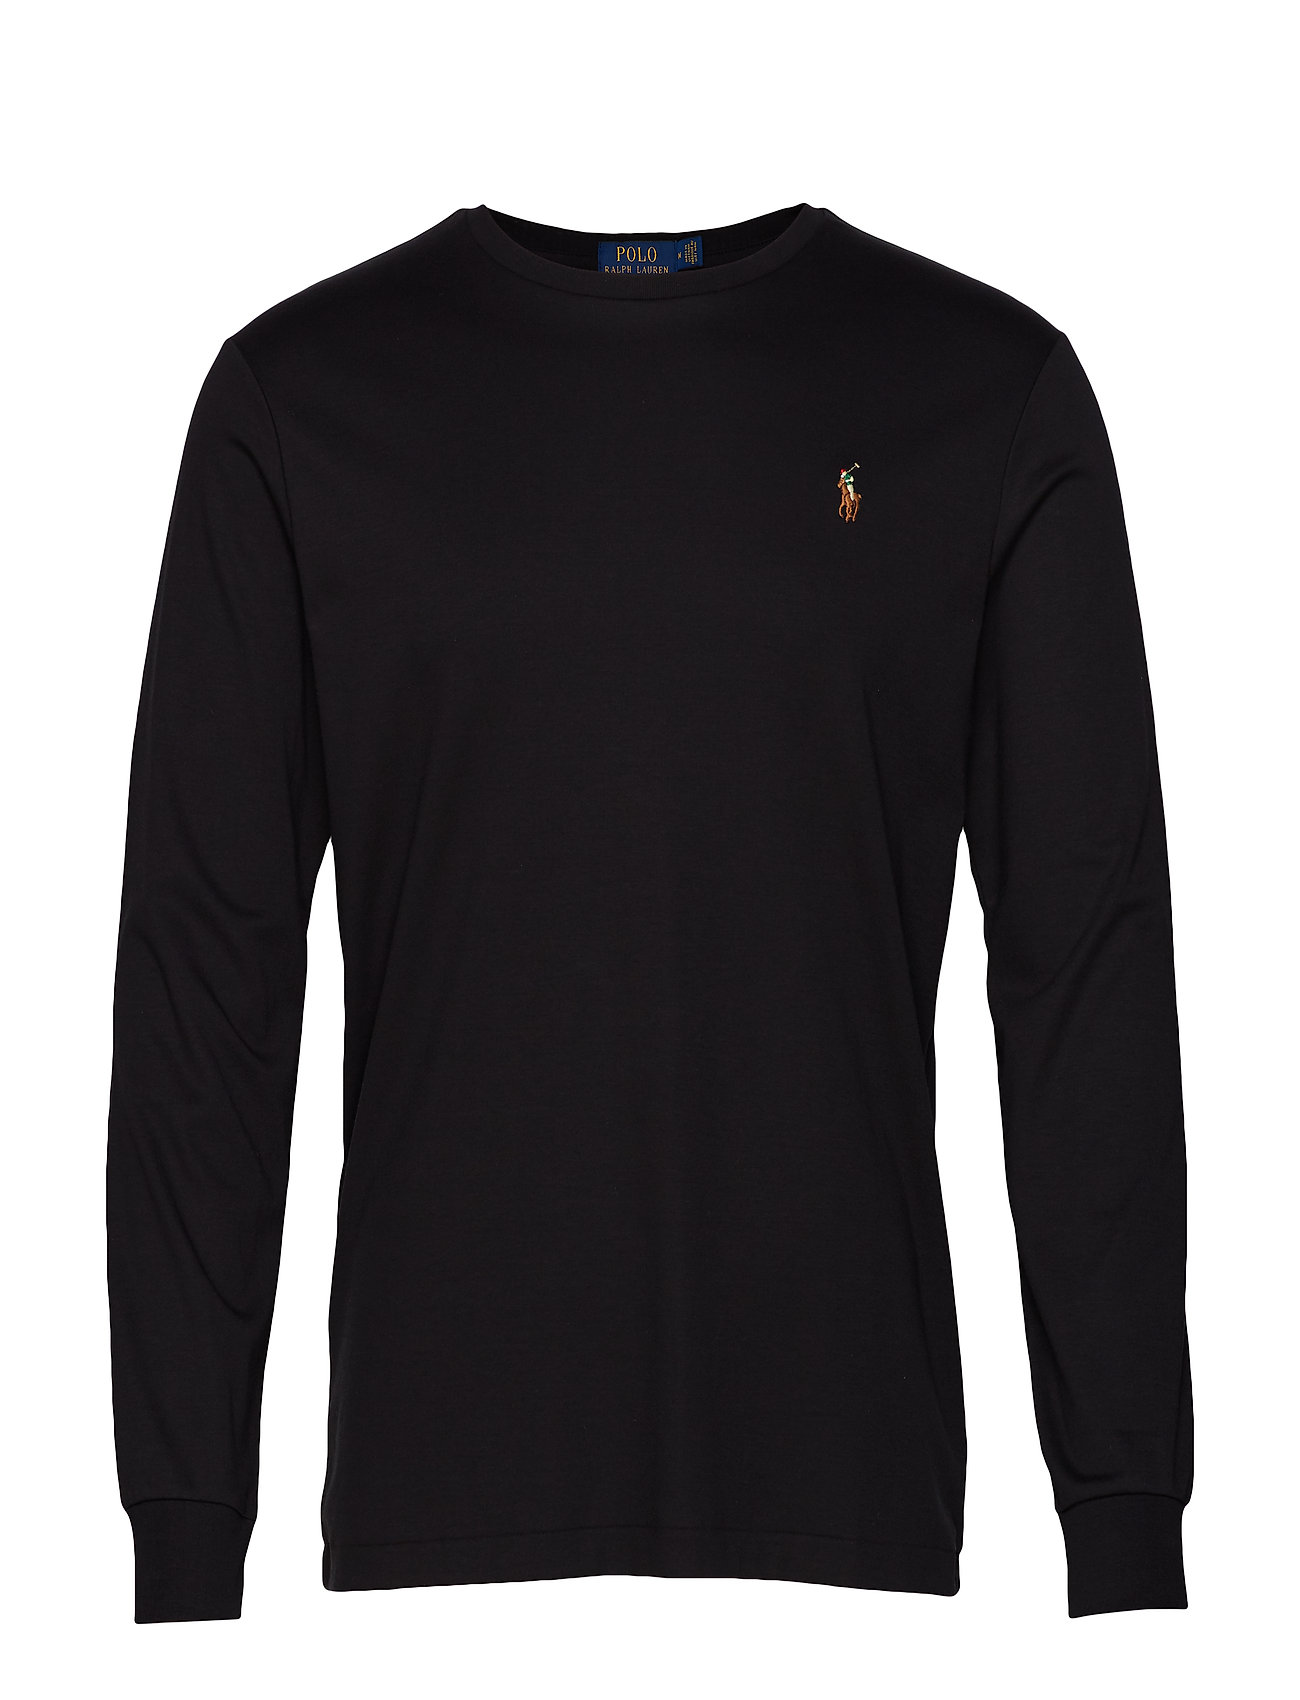 Polo Ralph Lauren Custom Slim Interlock T-Shirt - POLO BLACK